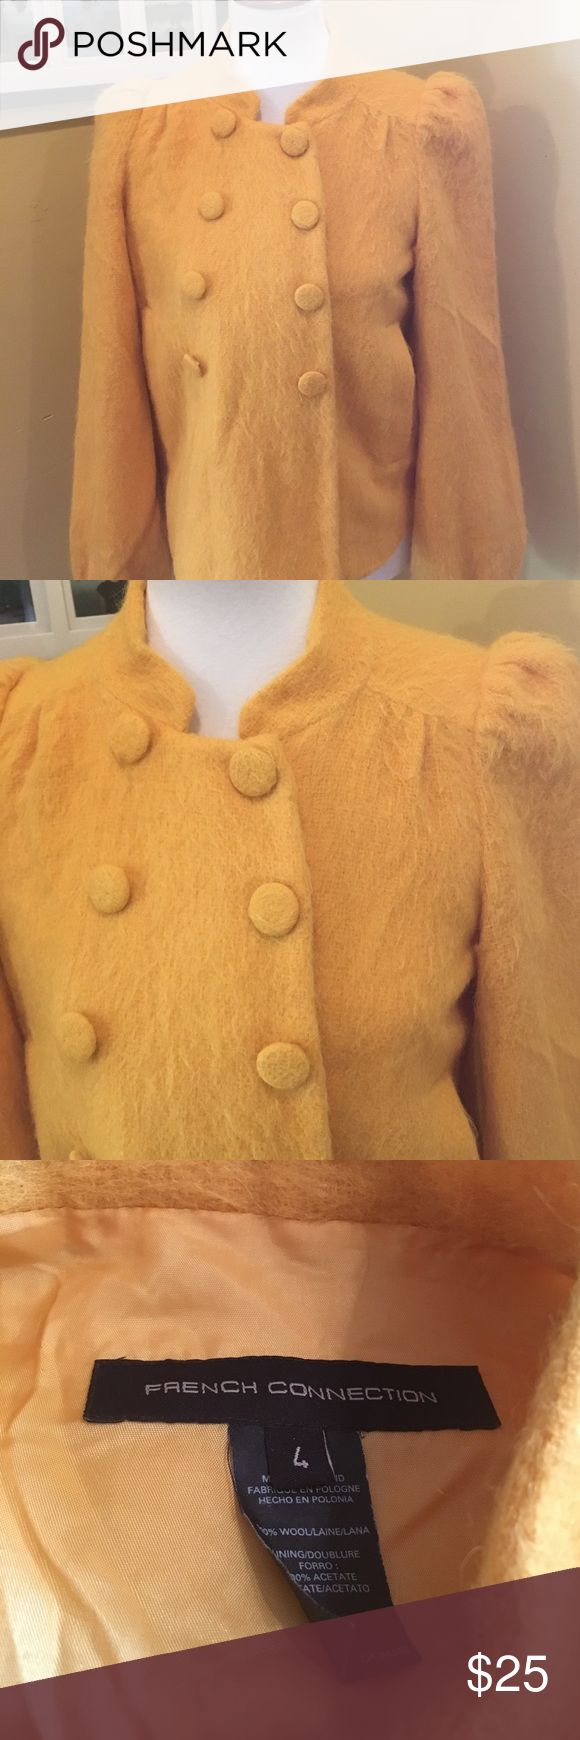 "French connection yellow wool jacket size 4 French connection wool jacket in a size 4. Fully lined, excellent shape. Length 23"", 19.5"" underarm to underarm French Connection Jackets & Coats Blazers"